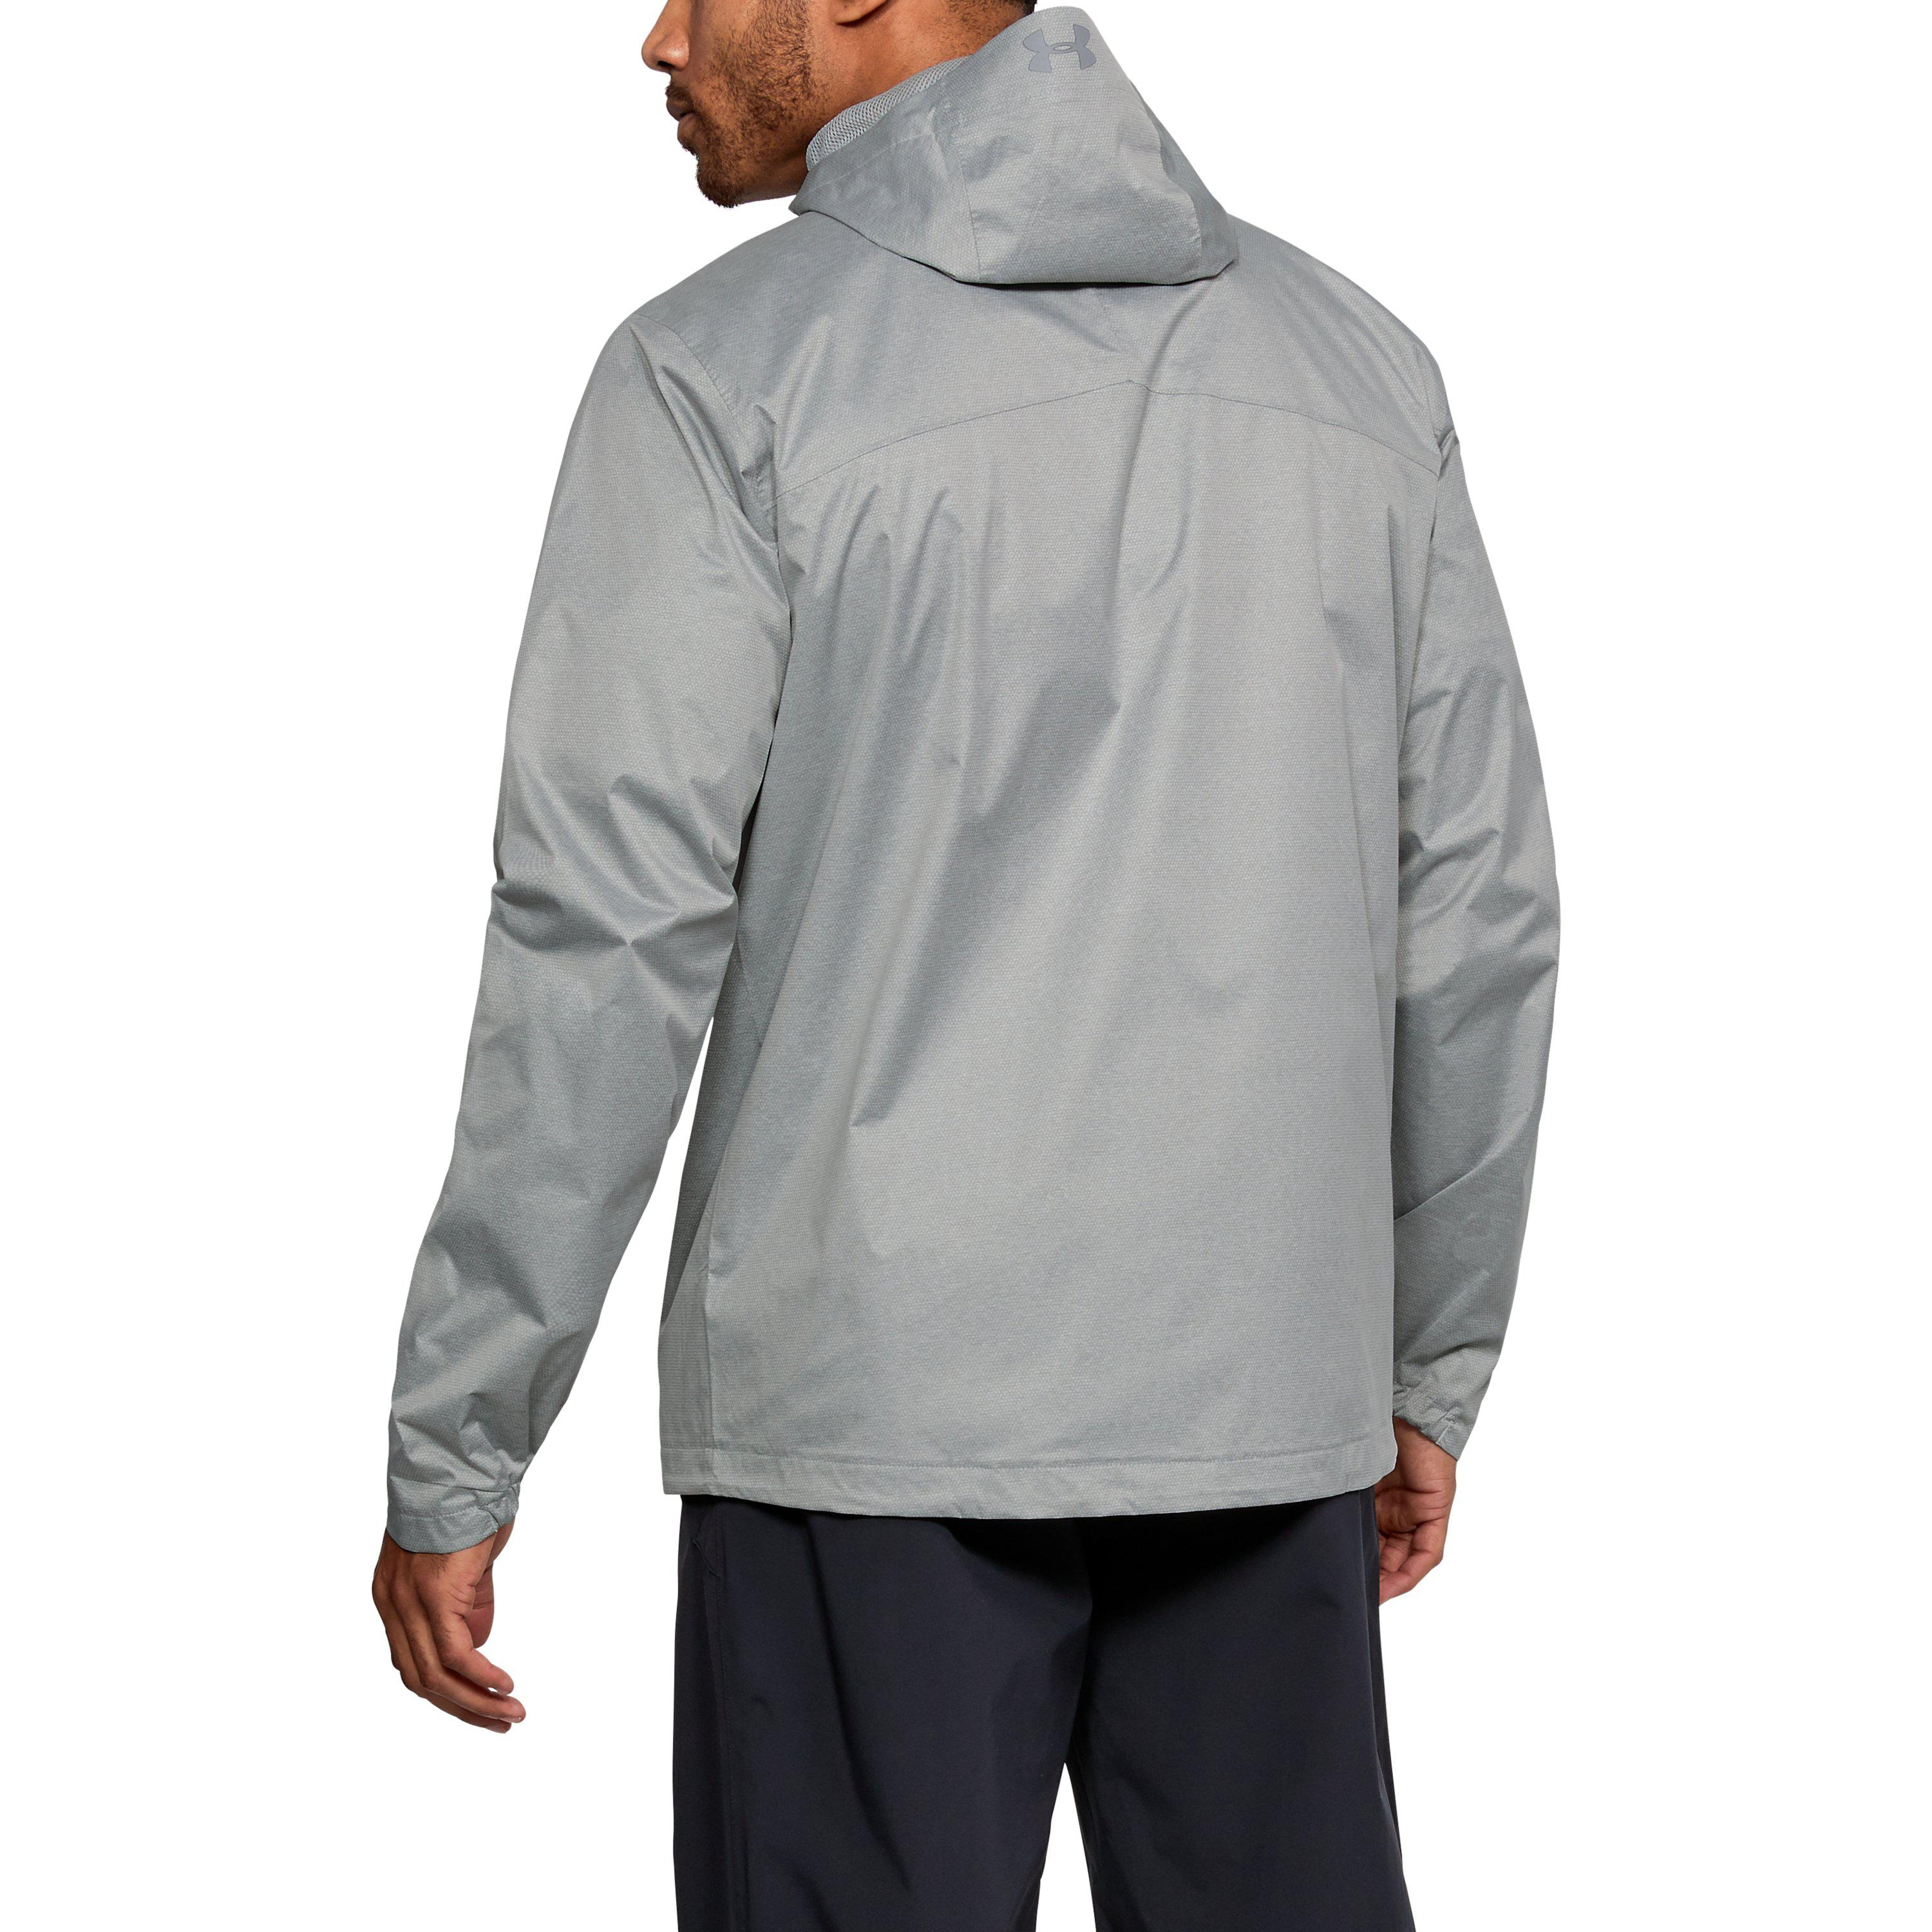 cabceba9dc6a Under Armour - Gray Men s Ua Overlook Jacket for Men - Lyst. View fullscreen